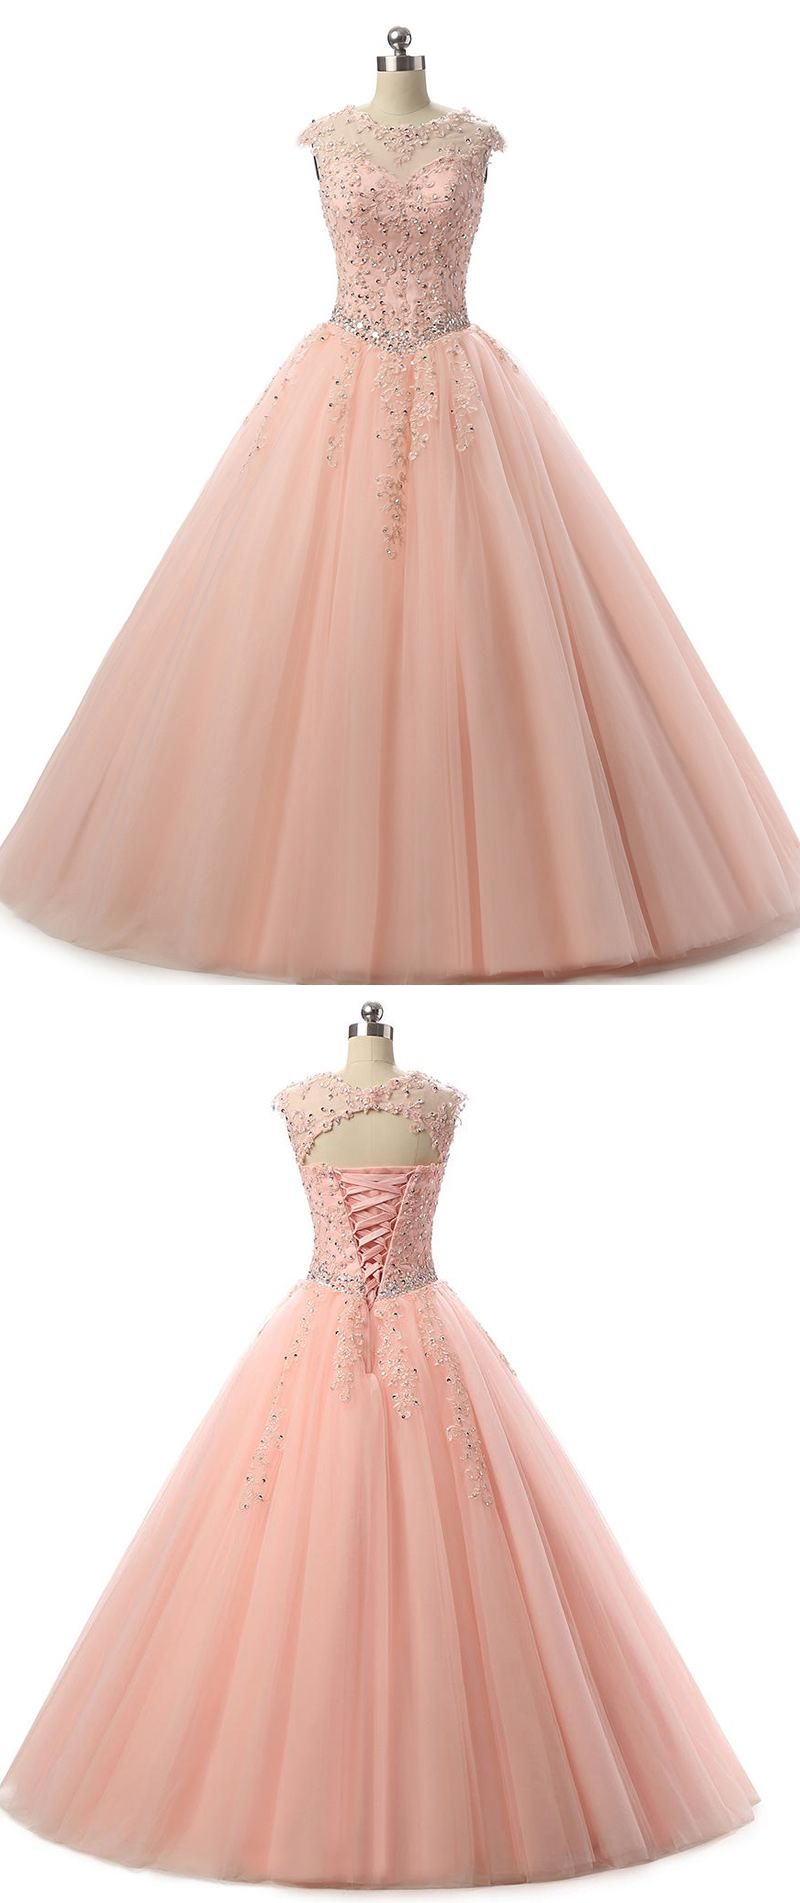 Siaoryne Pl6500 Best Rose Gold Prom Dress Lace Ball Gown Quinceaneras For Girls Sweet Sixteen Dresses Rose Gold Prom Dress Quinceanera Dresses Gold Gold Prom Dresses [ 1903 x 800 Pixel ]